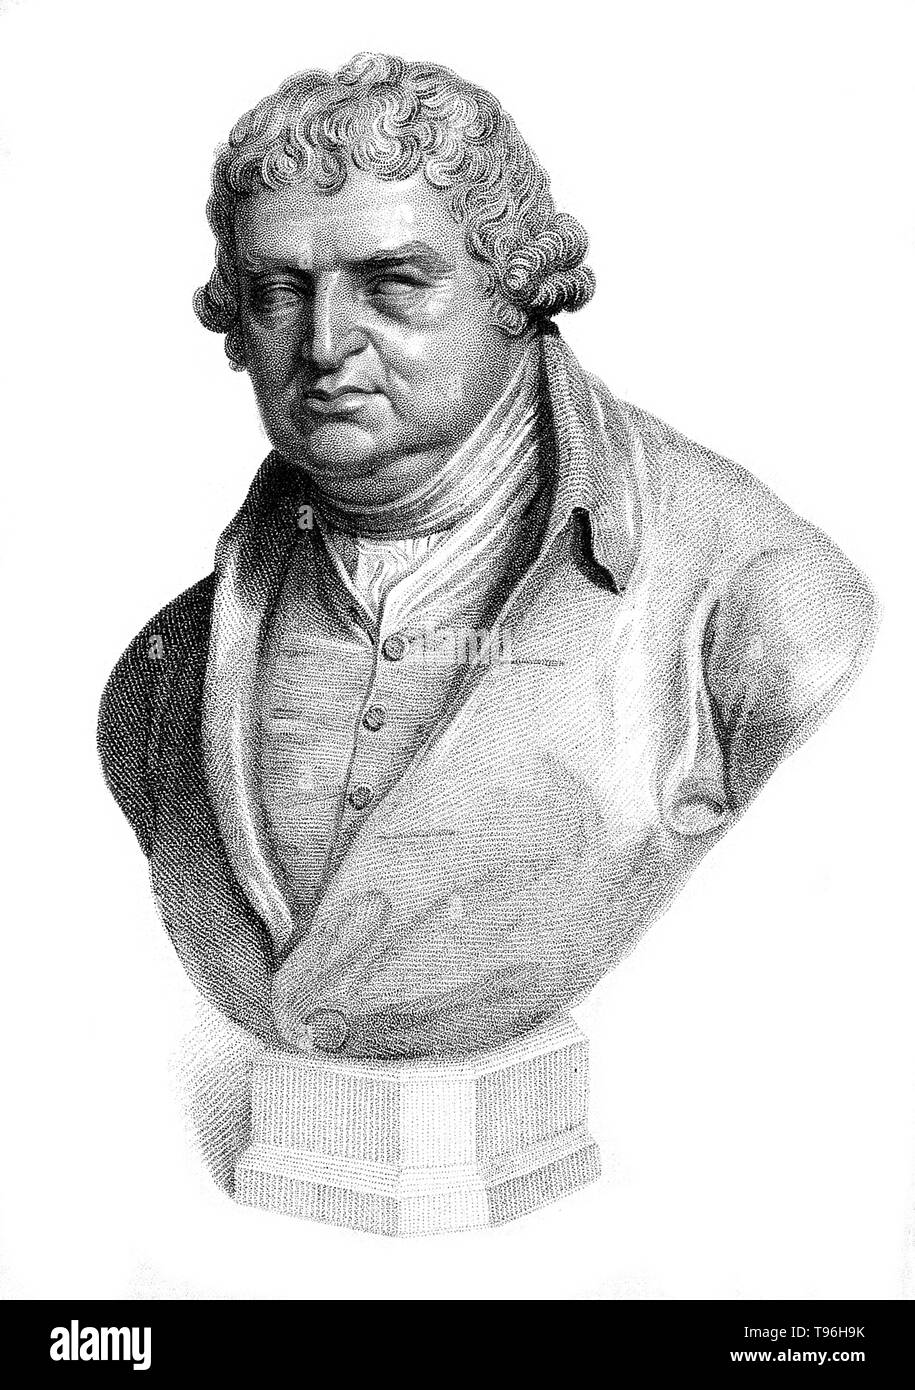 Erasmus Darwin (December 12, 1731 - April 18, 1802) was an English physician. One of the key thinkers of the Midlands Enlightenment, he was also a natural philosopher, physiologist, slave-trade abolitionist, inventor and poet. He invented a carriage steering mechanism, a manuscript copier and a speaking machine. His poems included much natural history, including a statement of evolution and the relatedness of all forms of life. He was a founding member of the Lunar Society of Birmingham, a discussion group of pioneering industrialists and natural philosophers. His grandsons include Charles Dar - Stock Image